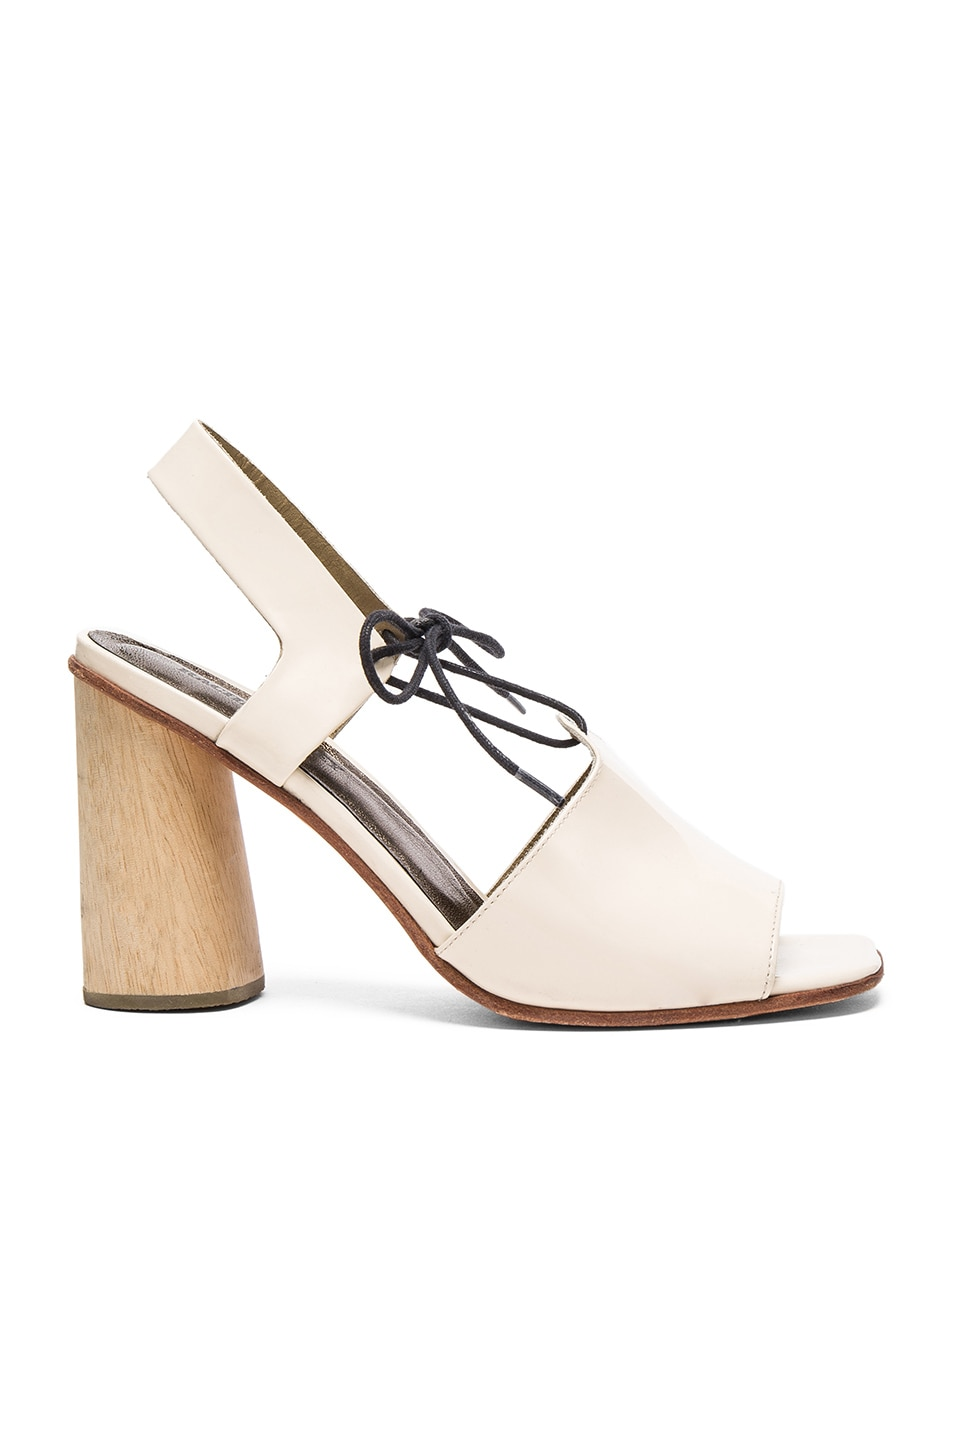 Image 1 of Rachel Comey Patent Leather Melrose Heels in Creamsicle Patent